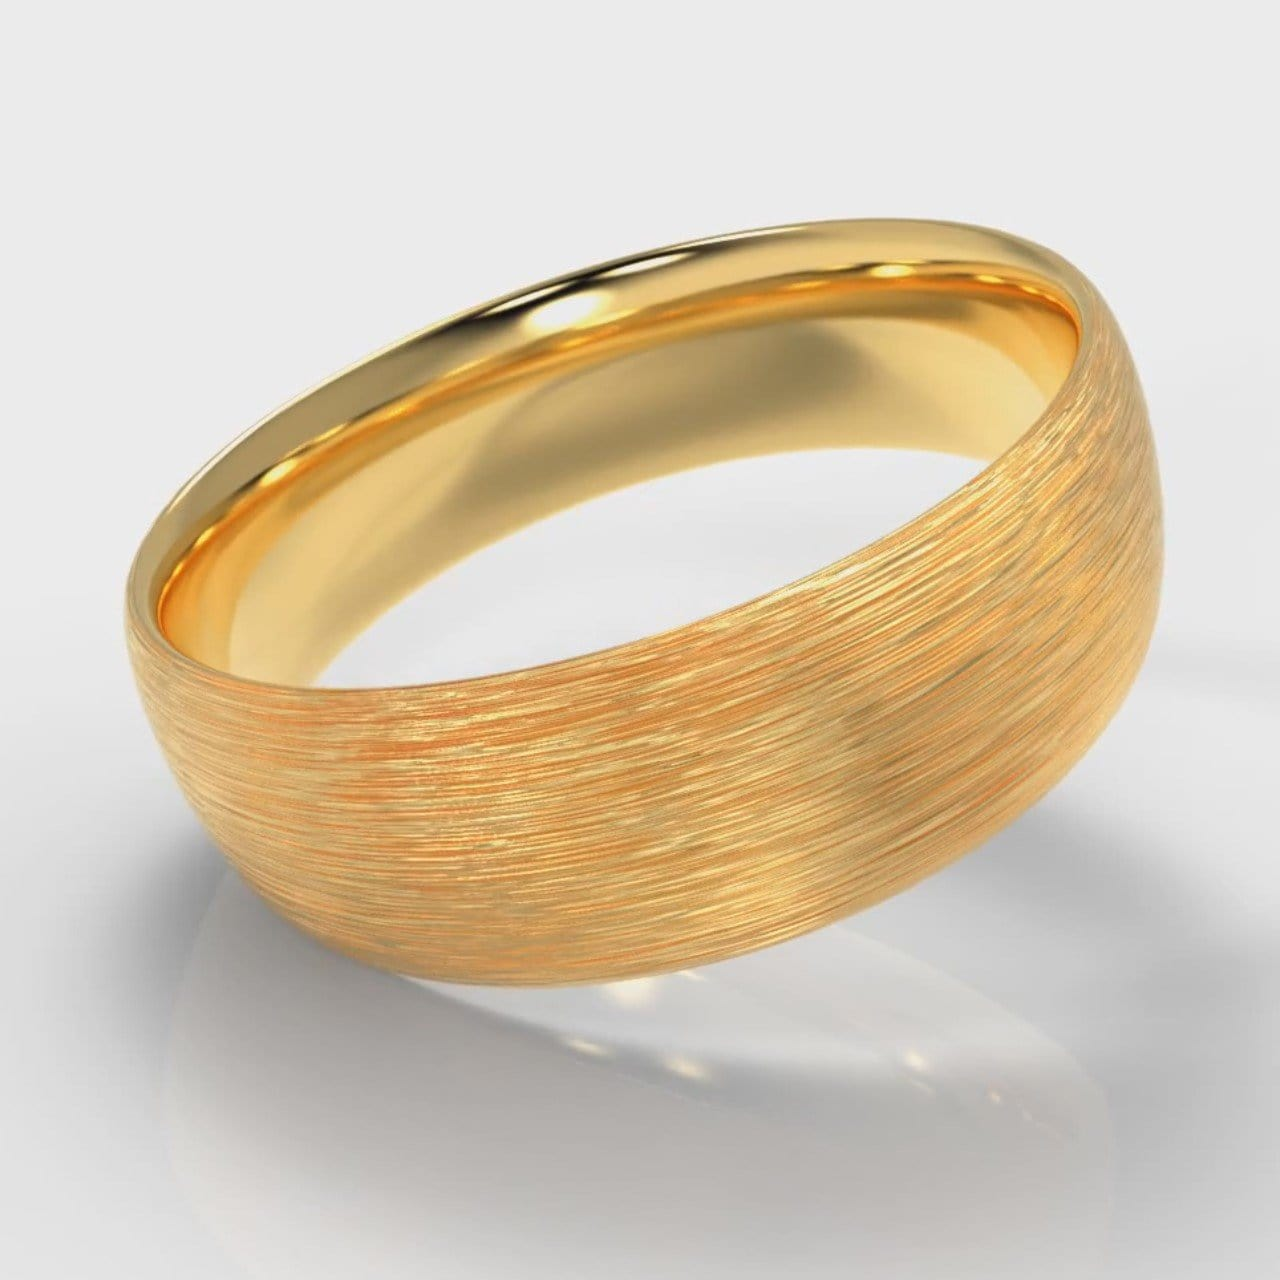 7mm Court Shaped Comfort Fit Brushed Wedding Ring - Yellow Gold